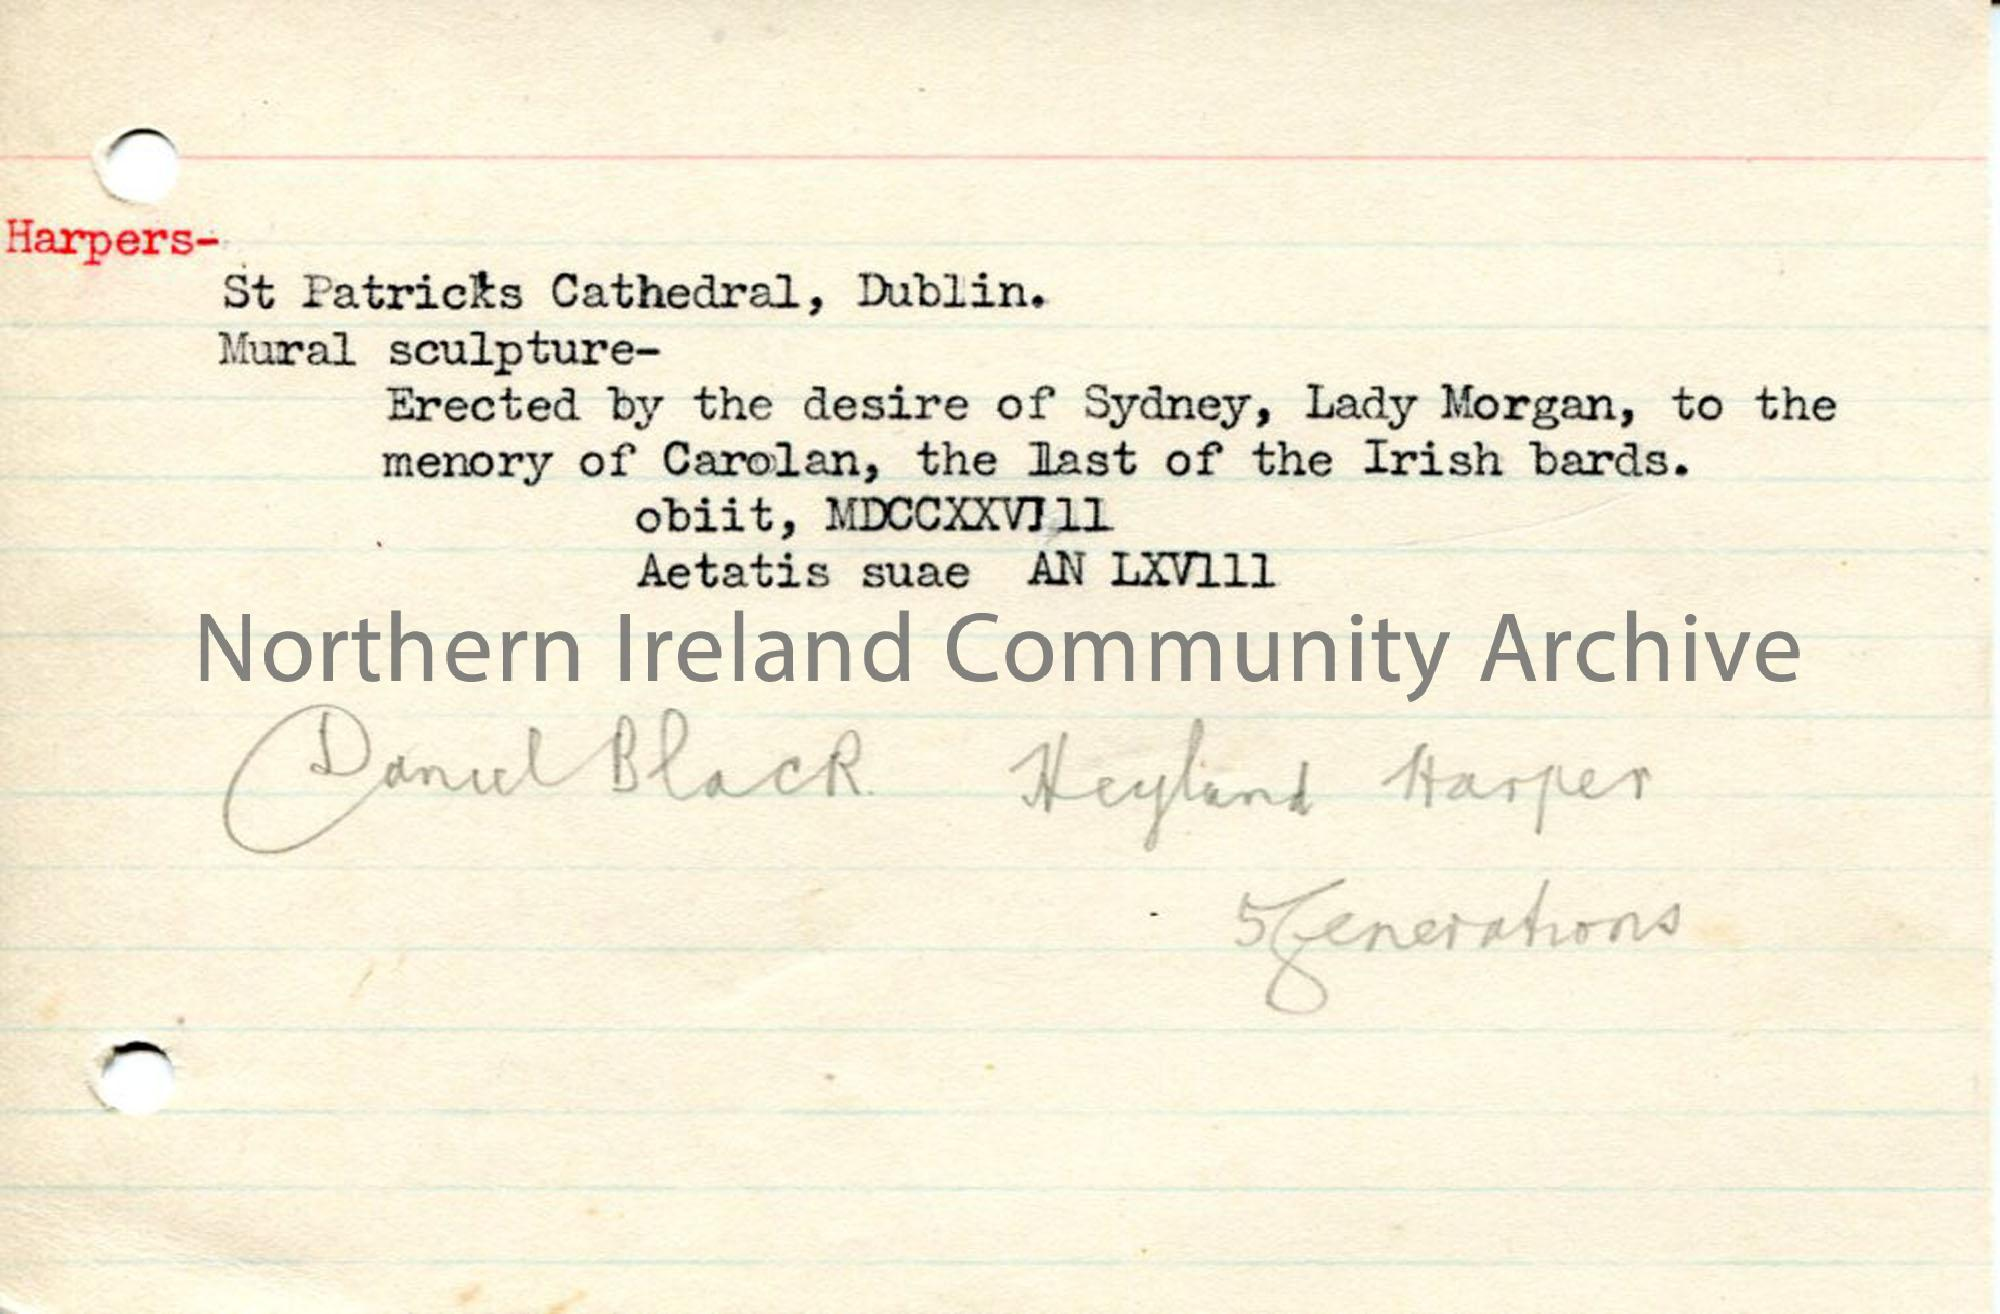 Typed notes re: sculpture in St Patrick's Cathedral to Carolan, an Irish bard and harper